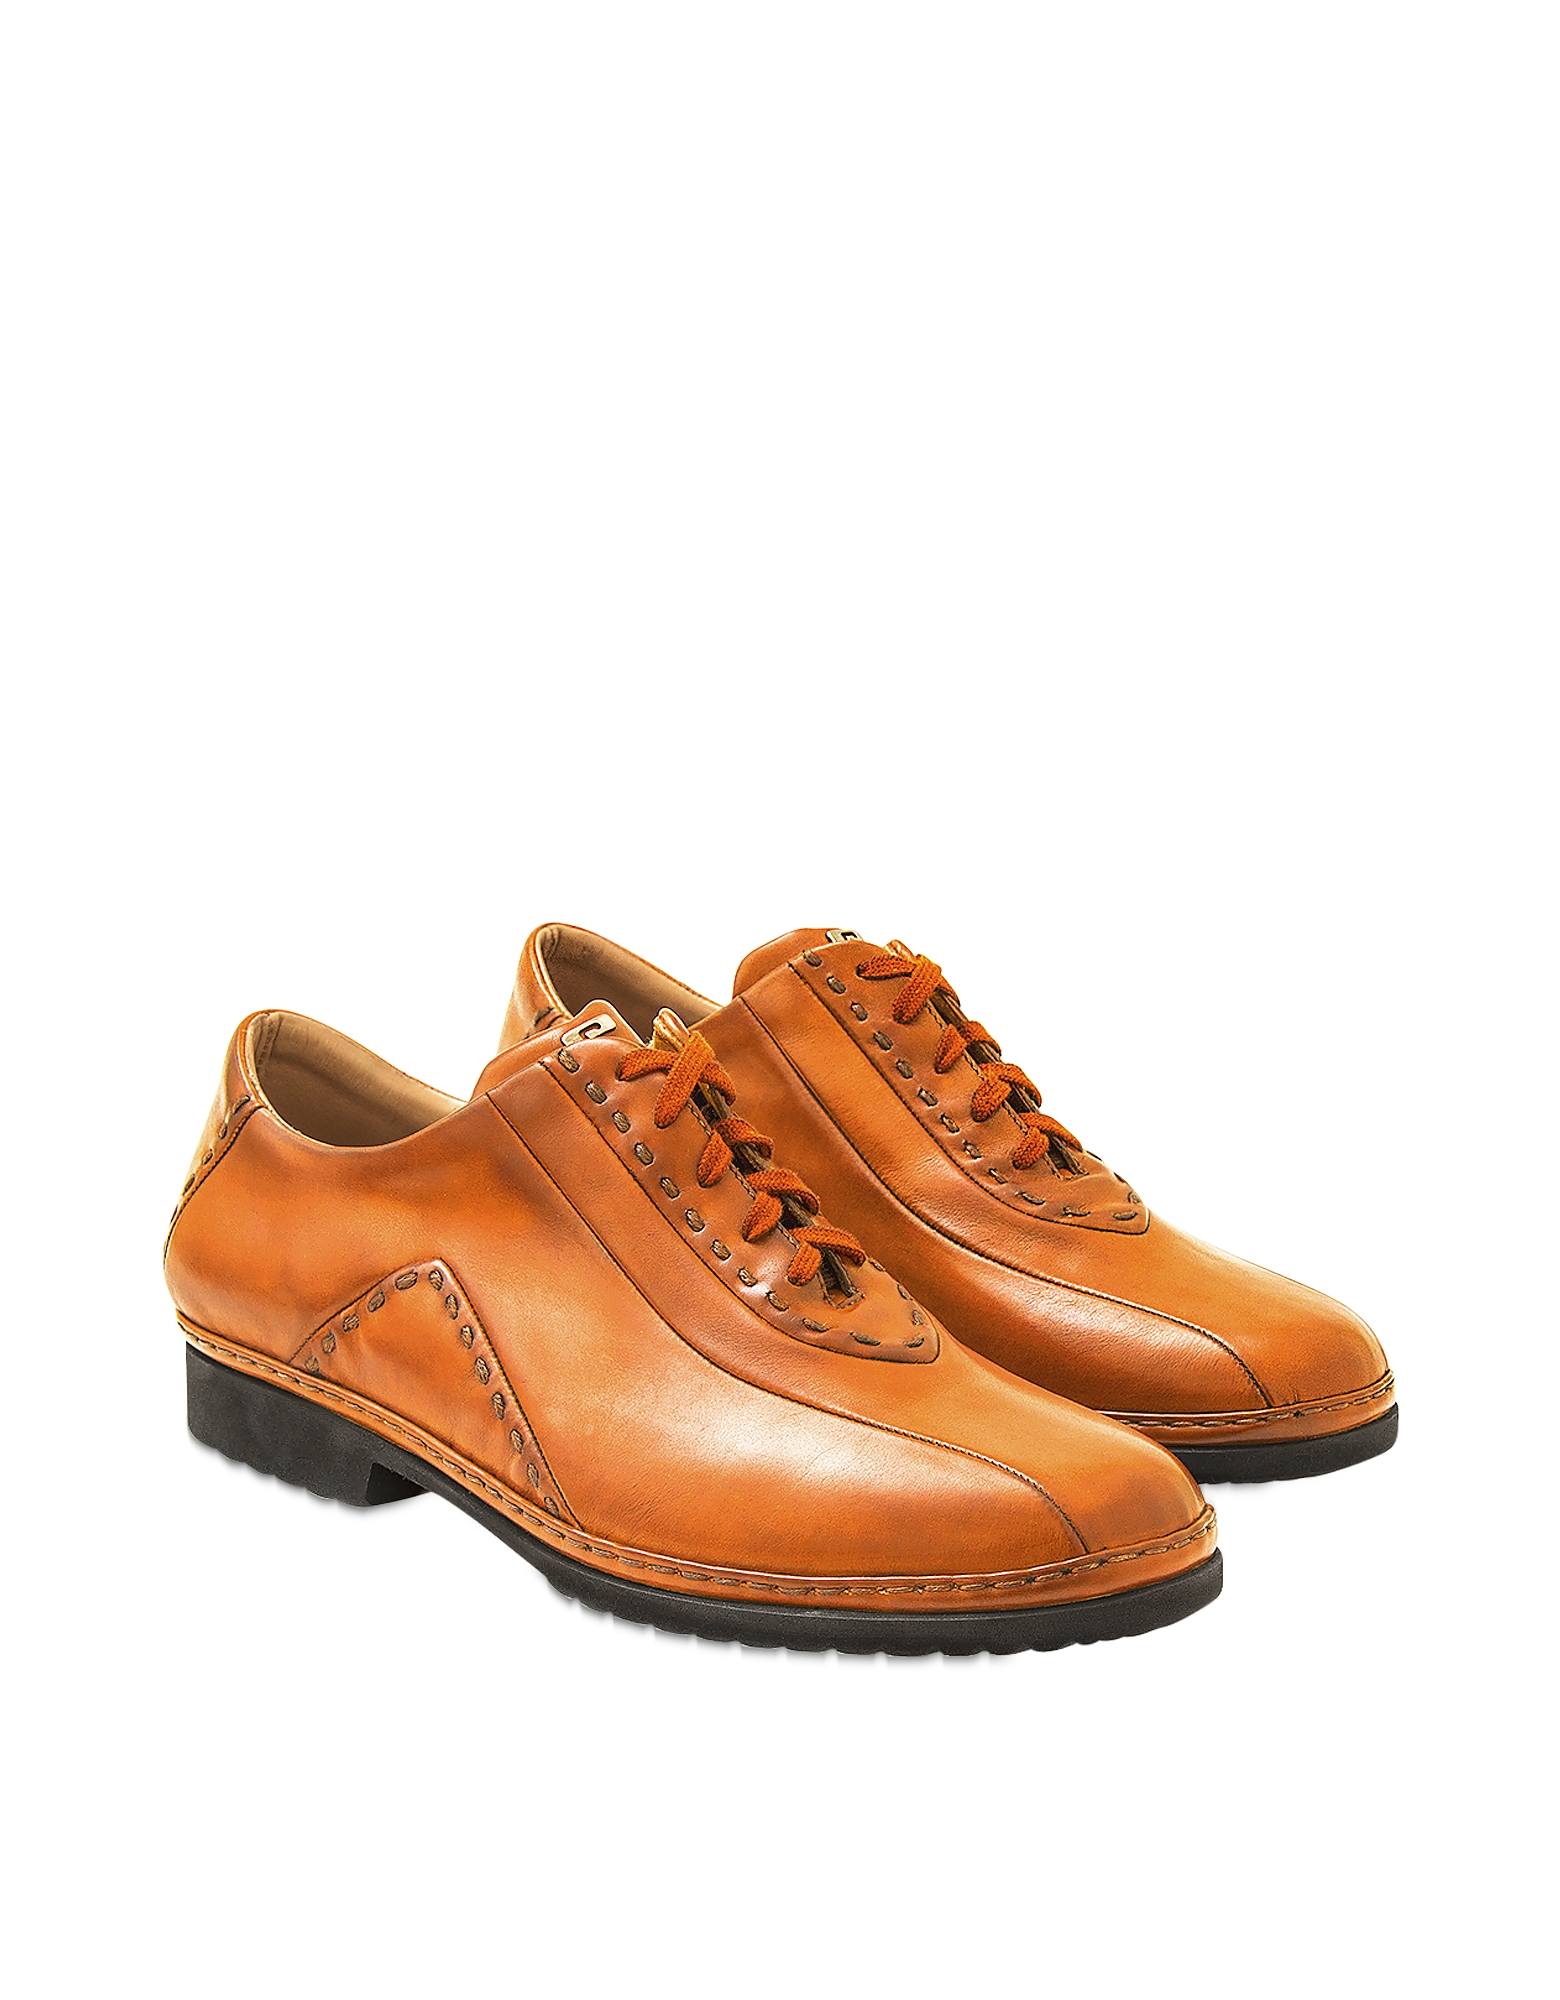 Pakerson Designer Shoes, Orange Italian Hand Made Calf Leather Lace-up Shoes